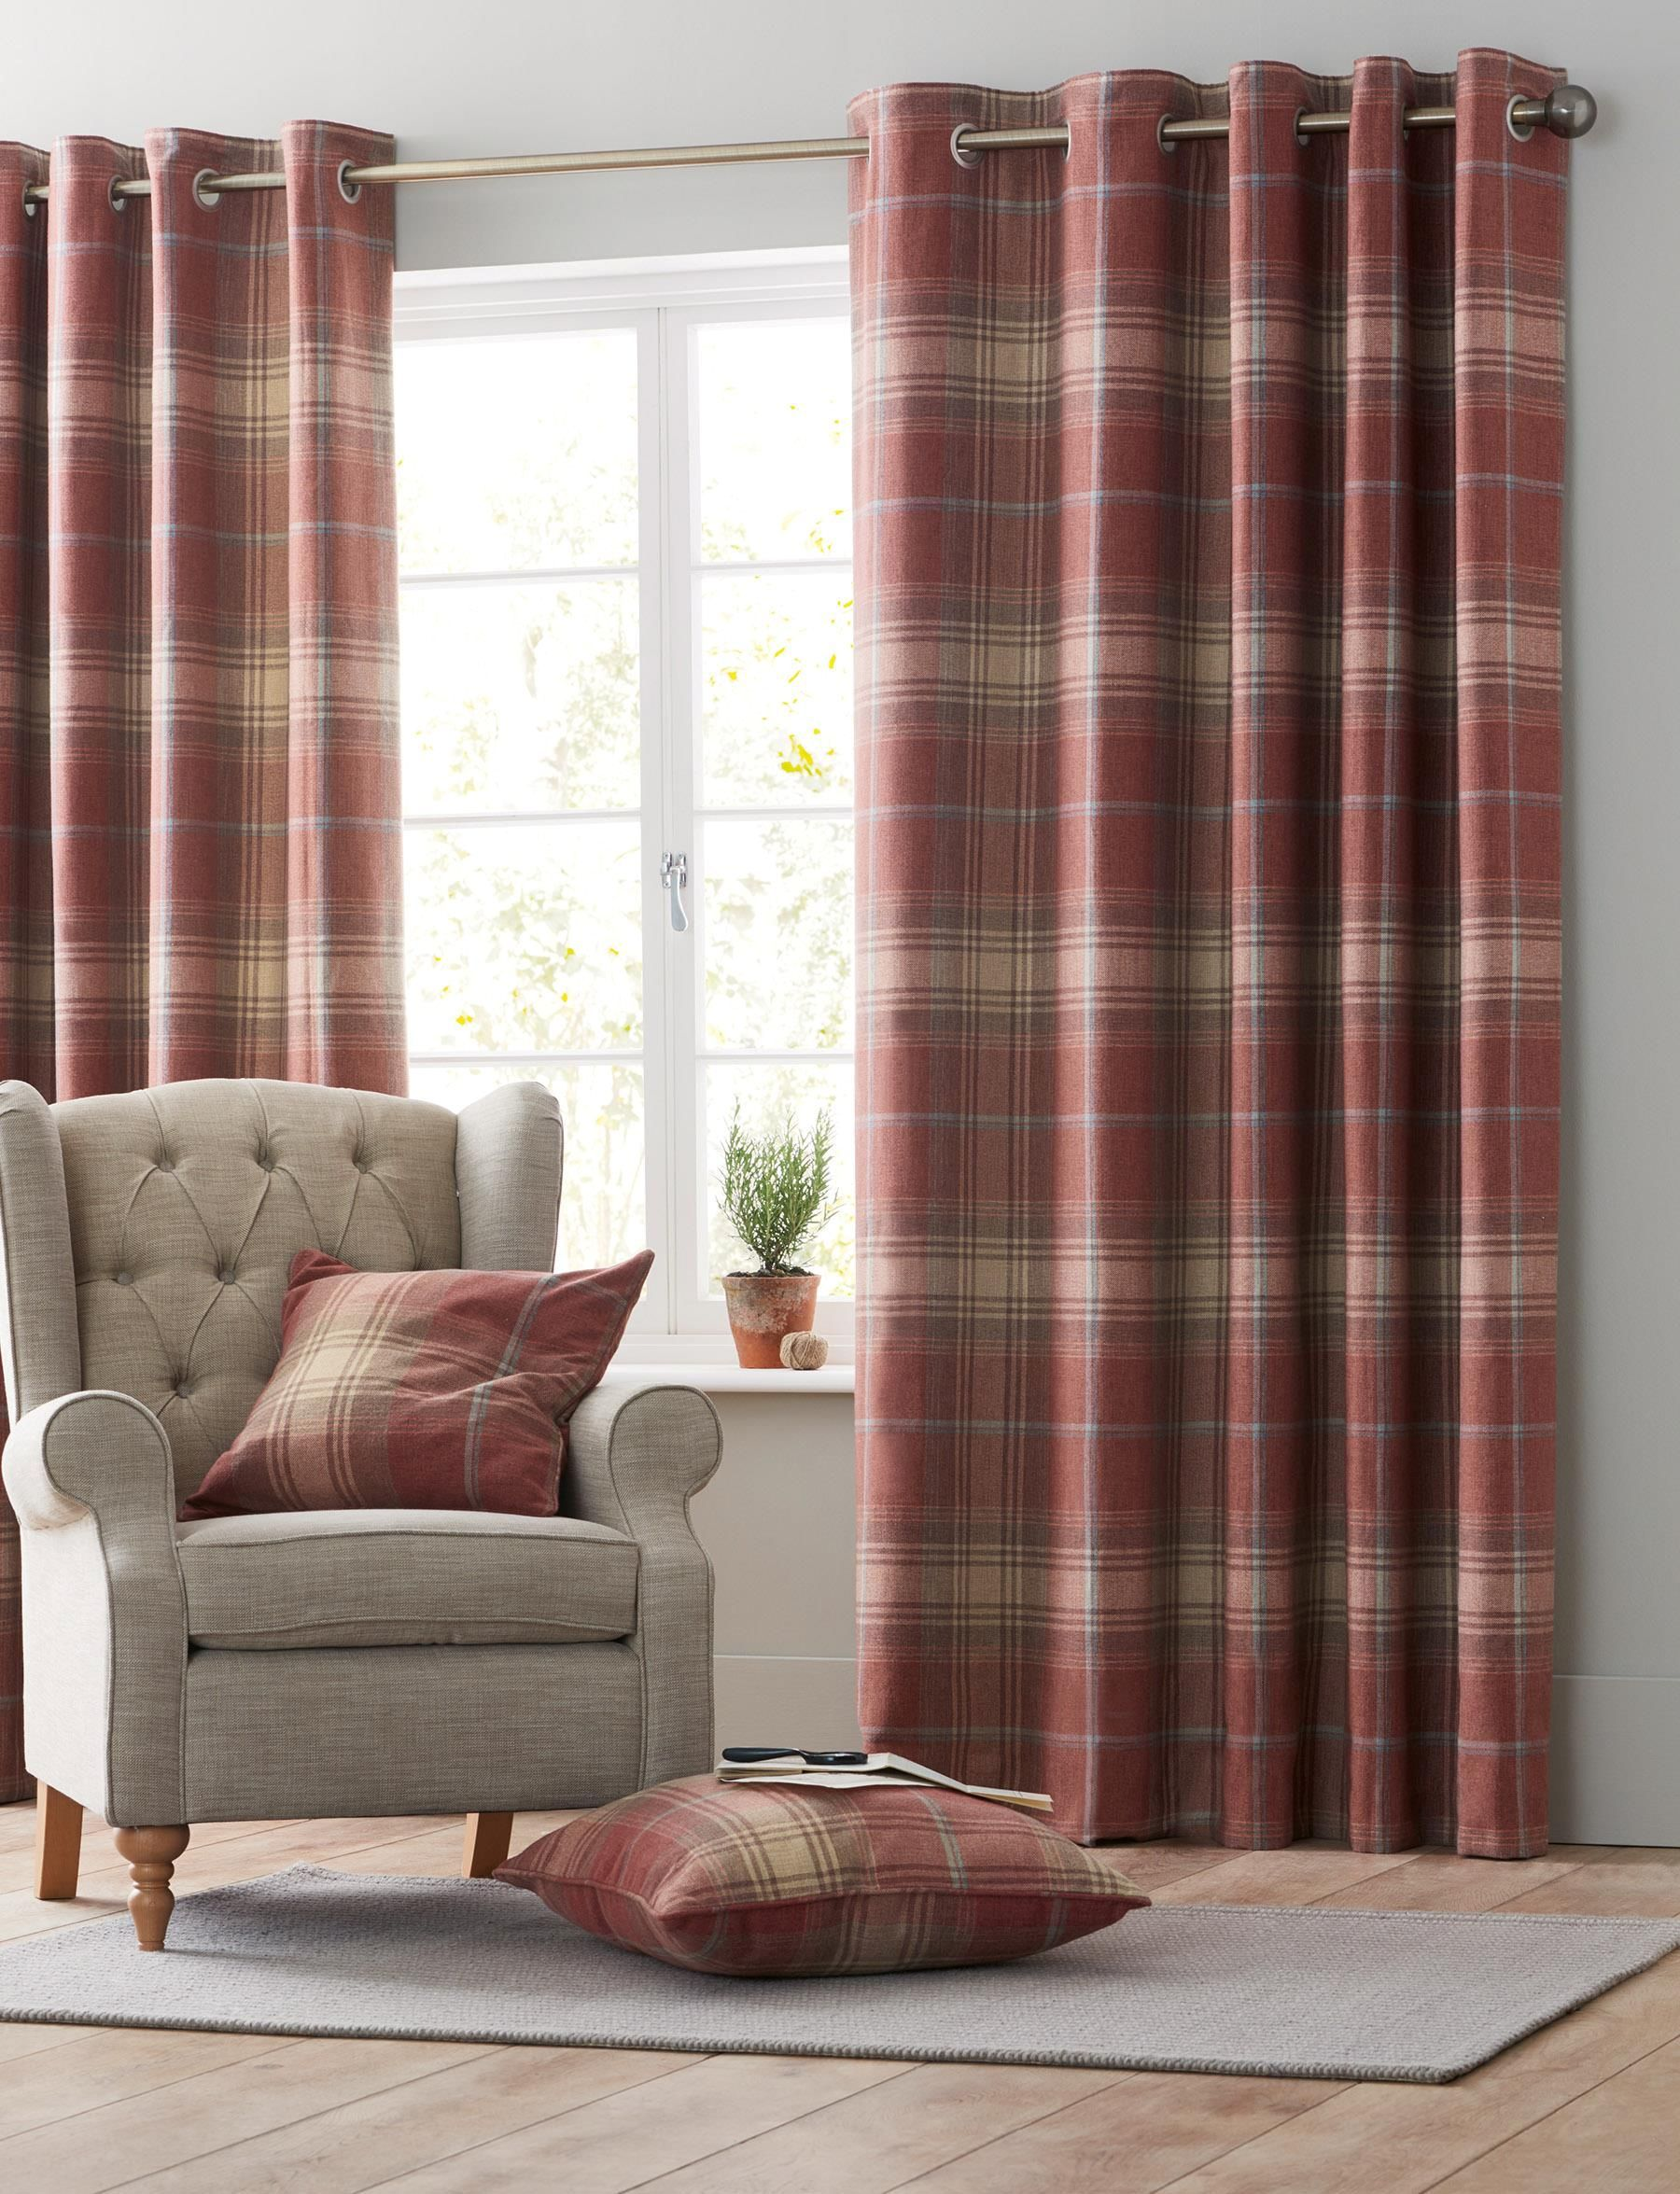 Buy Thermal Red Woven Check Stirling Eyelet Curtains from the Next UK online shop